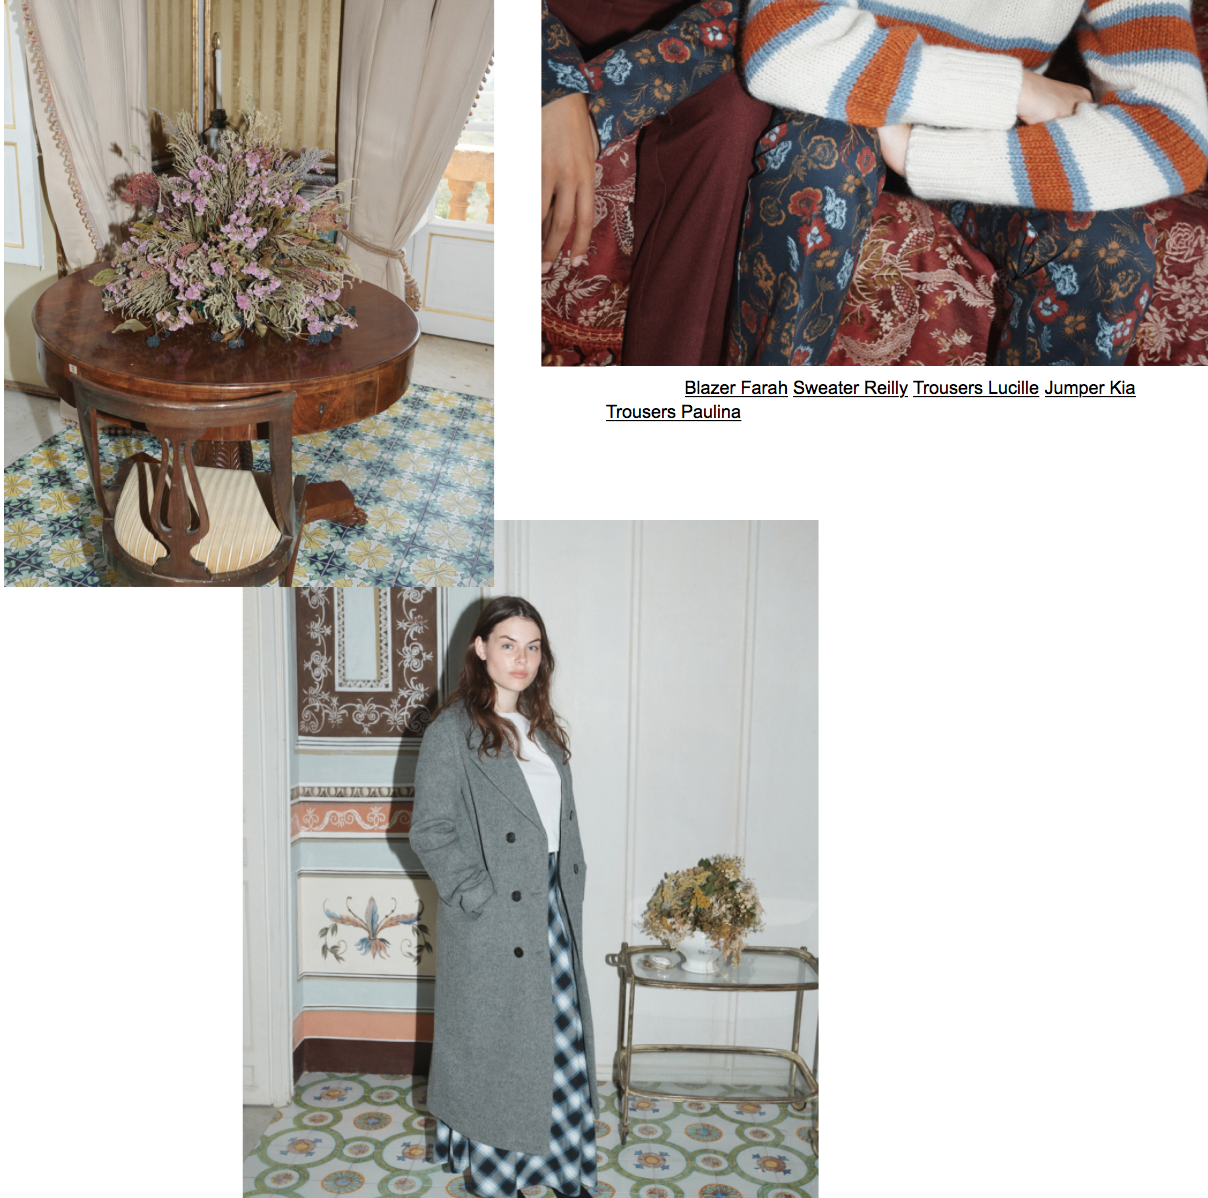 WINTER BLOOM - Dark florals for winter (groundbreaking!), paired with deep gem and burnt tones and patterned mismatched with stripes and plaid.